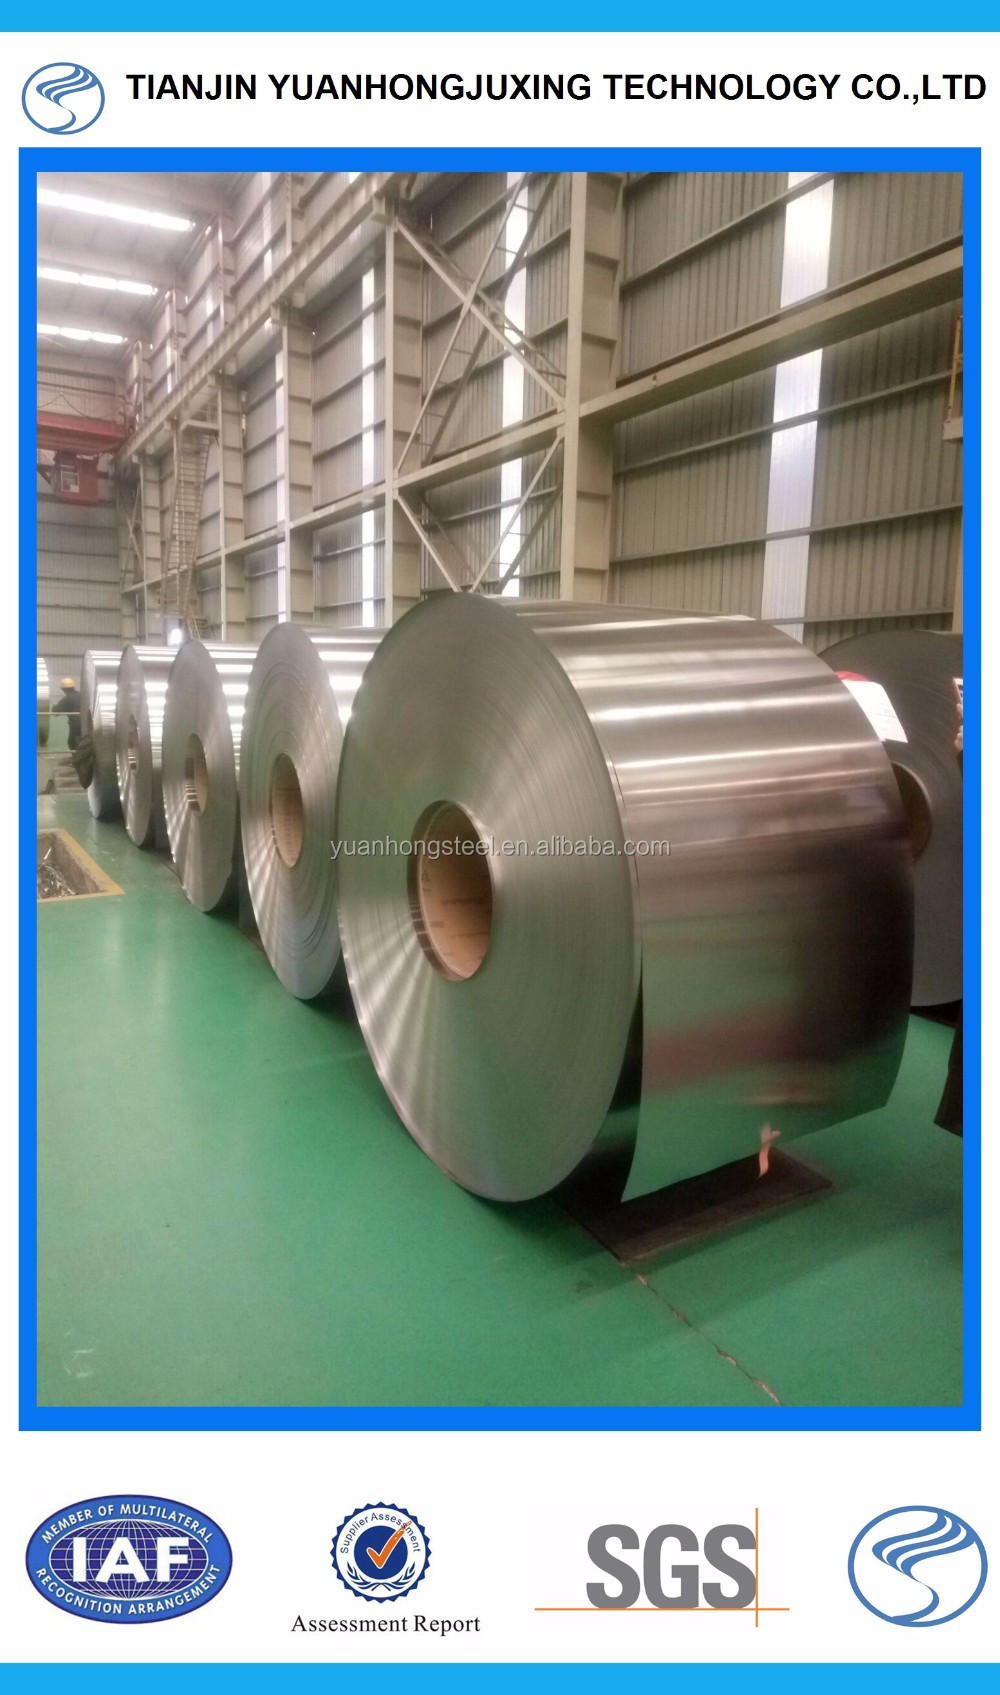 hot sale!!! best quality tinplate/ tin plate sheet, tinplate sheet in coil